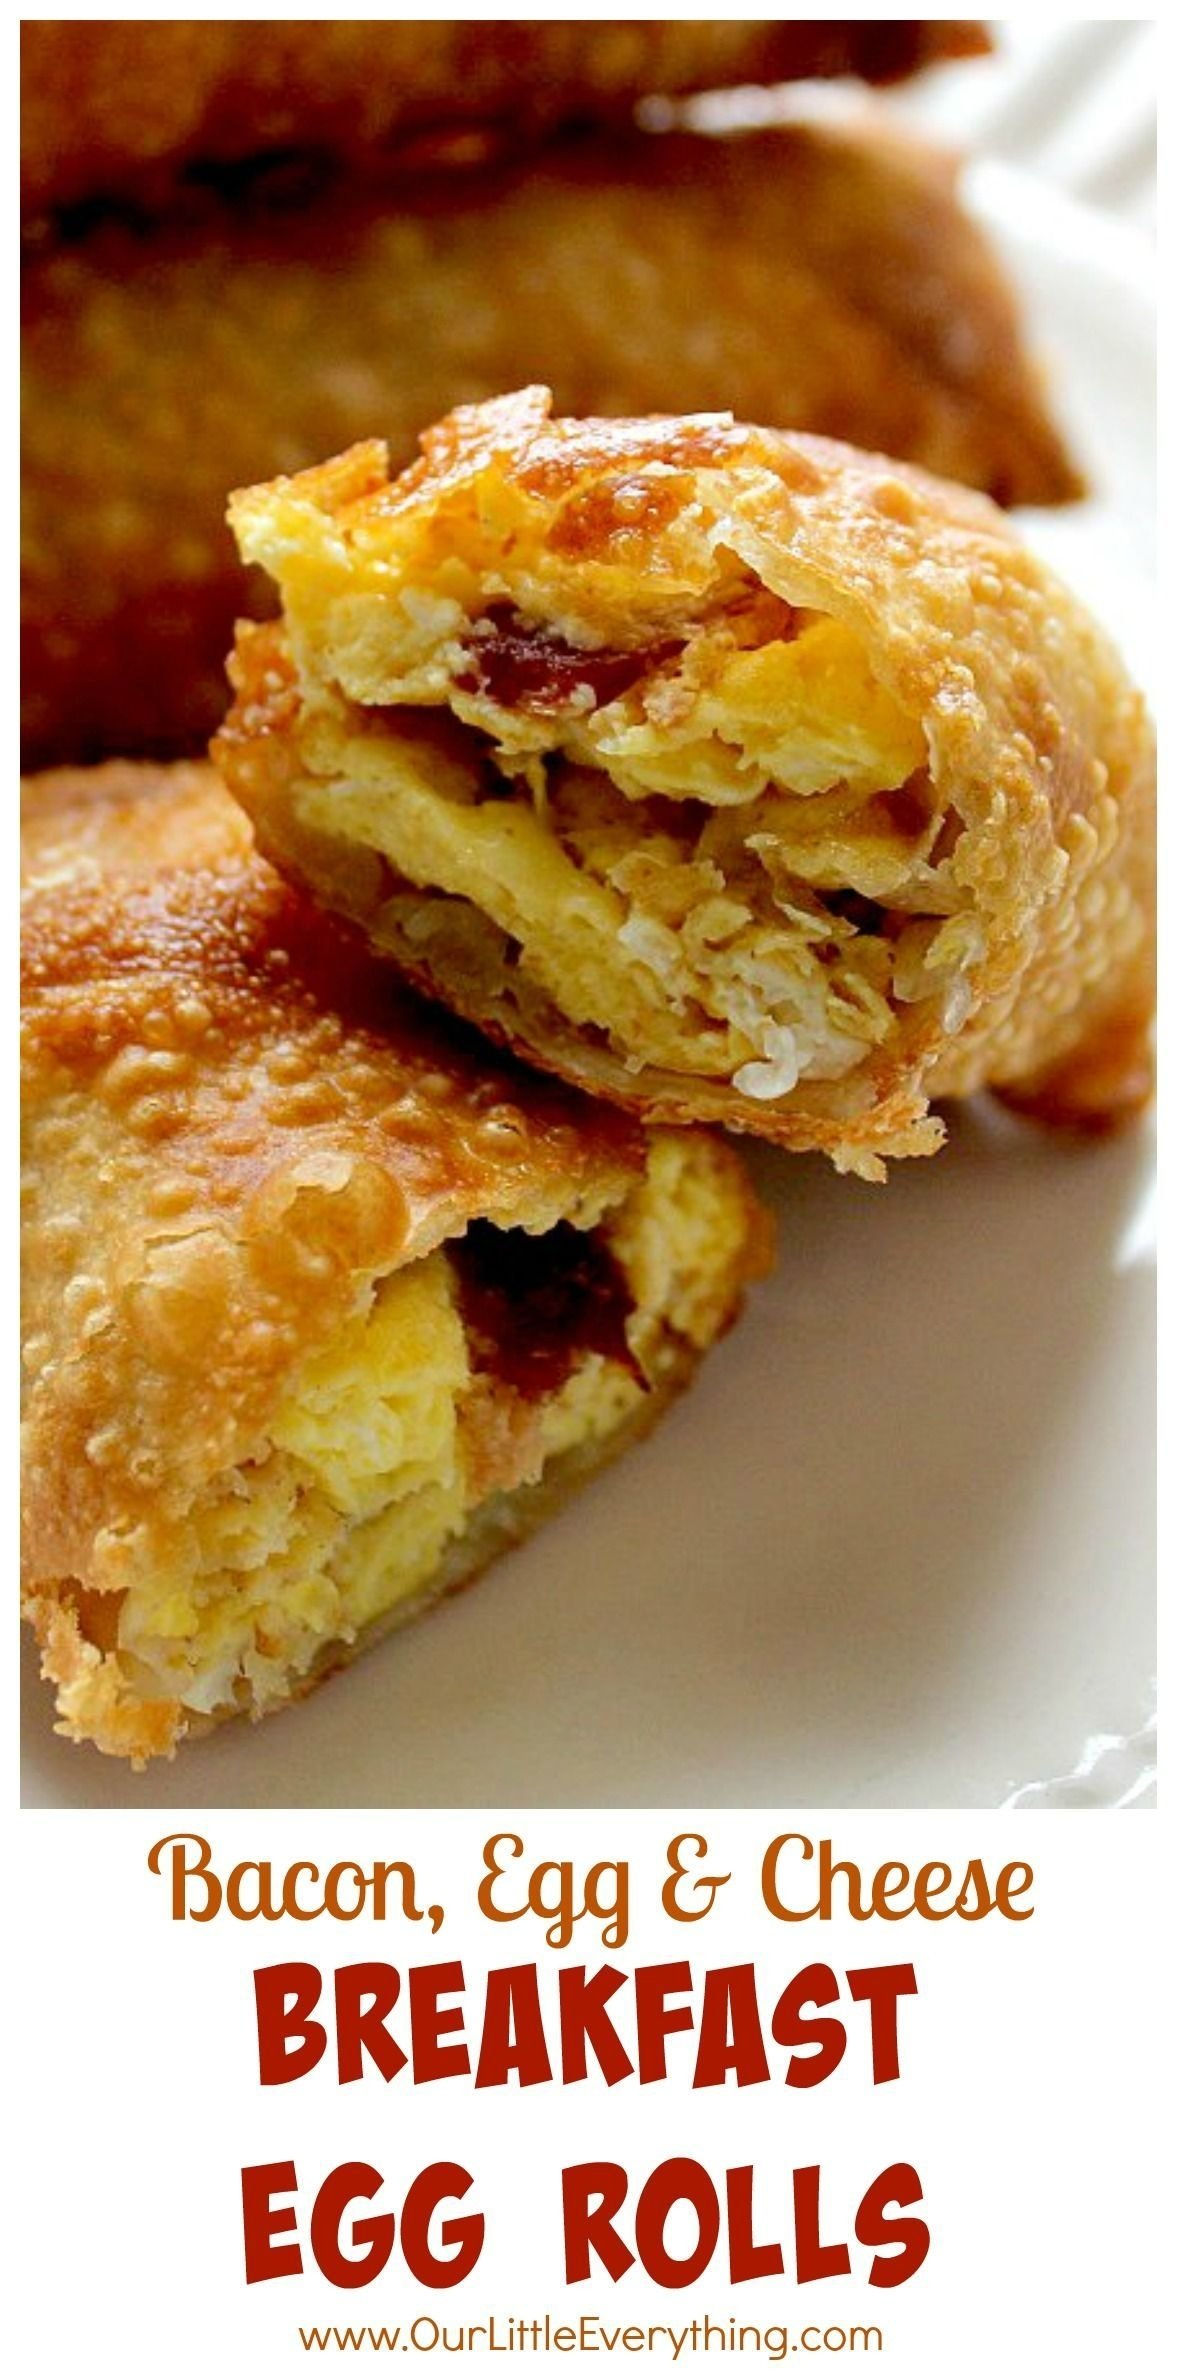 10 Lovely Egg Roll Wrapper Recipe Ideas why didnt i think of this sooner bacon egg and cheese stuffed 2021